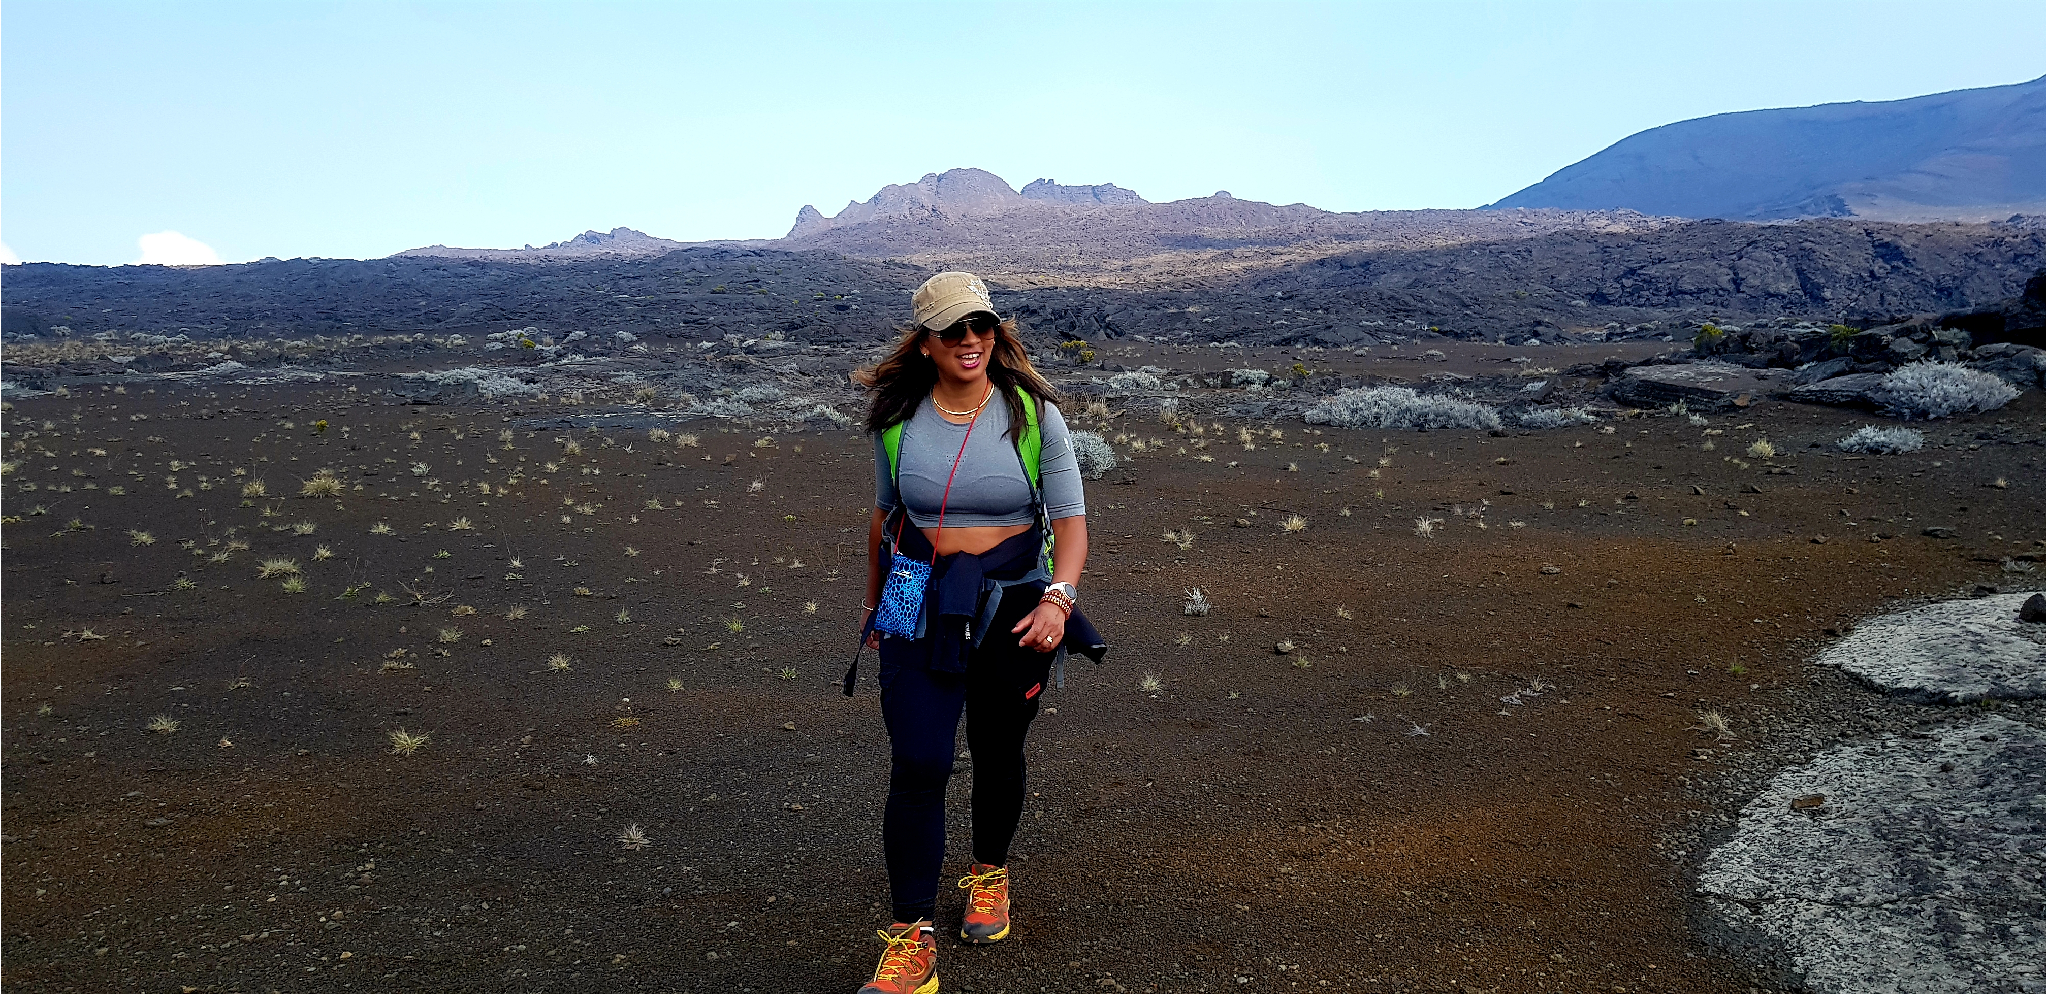 The whole Volcano site around Piton de la Fournaise is surreal, very out of this world kind of scenery.